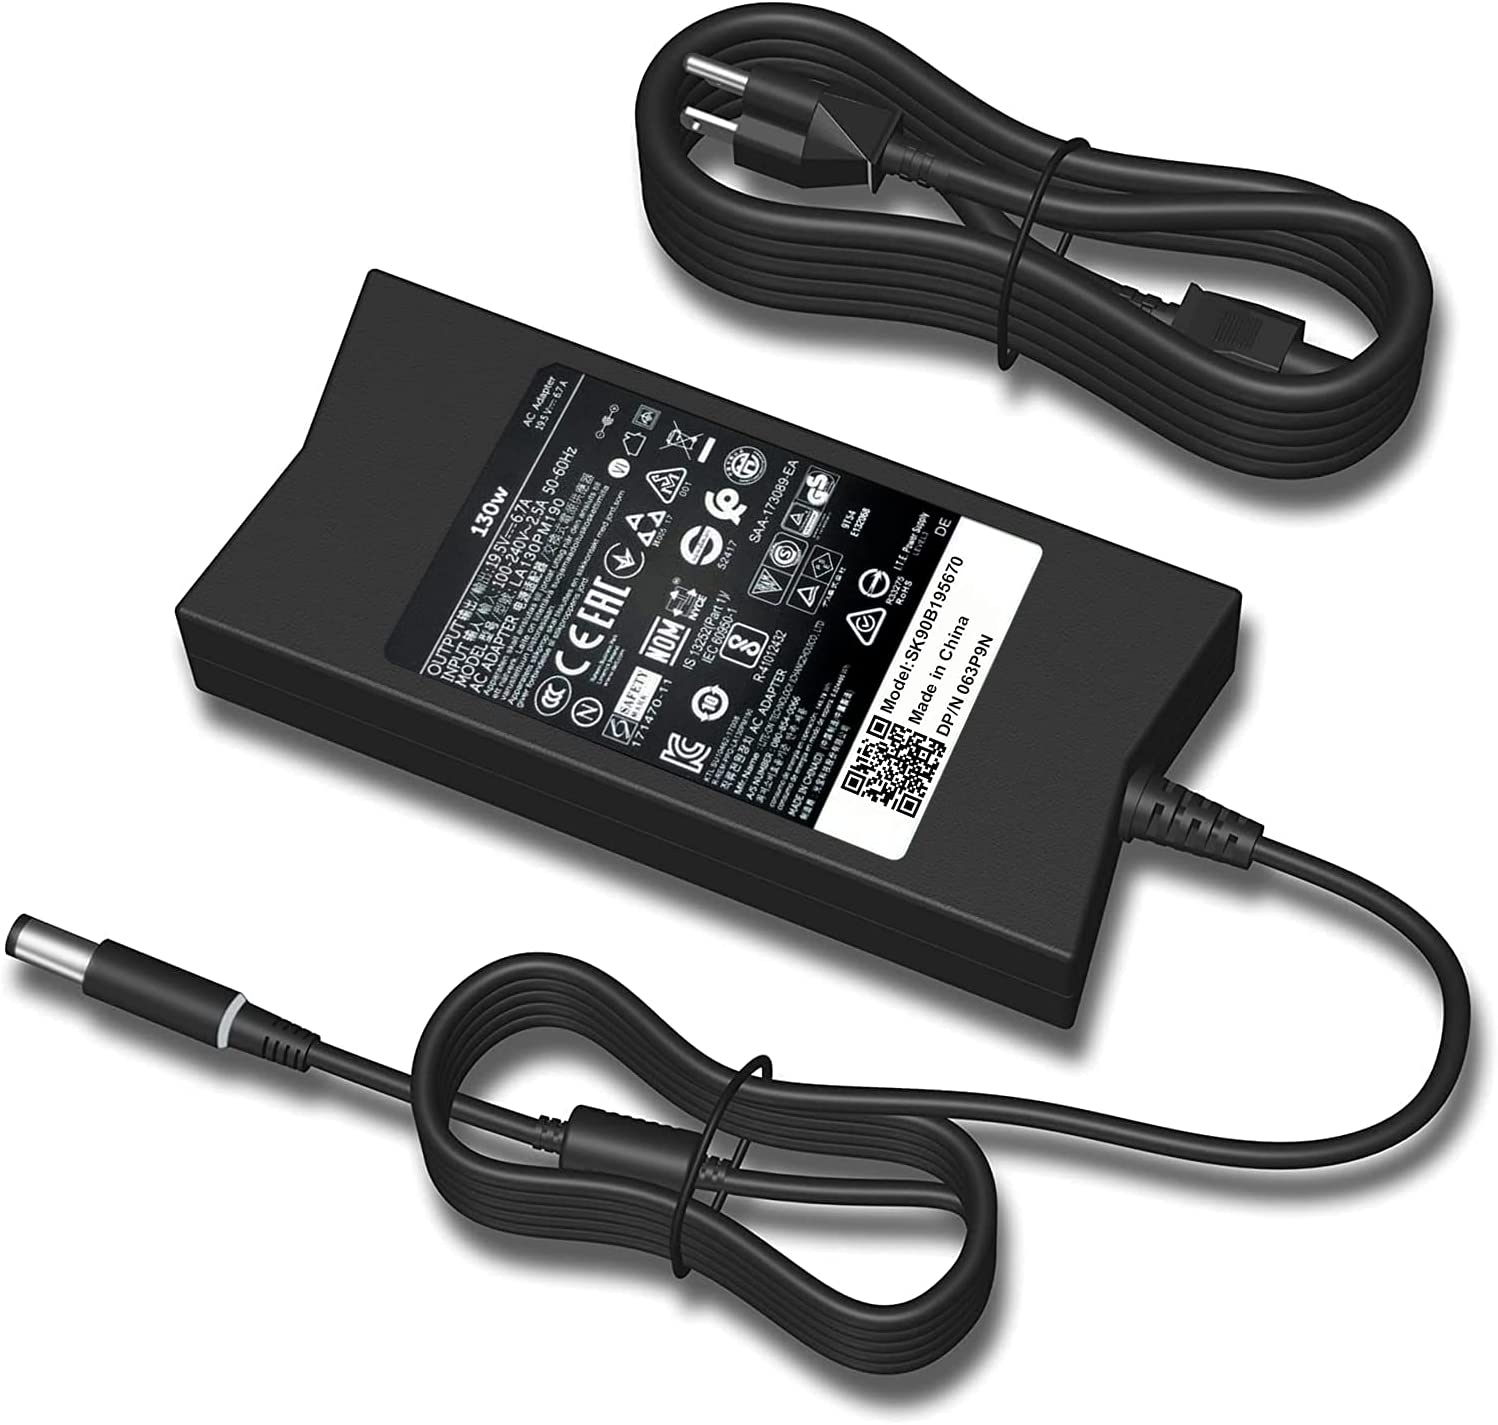 PA-4E DA130PE1-00 JU012 CM161(Tip 7.4mm) Compatible with Dell Inspiron 7559 Charger,Dell 130W Laptop Charger,Dell 130w AC Adapter,Dell Docking Station Power Cord, Dell XPS 15(L502x) 17(L702x) Charger